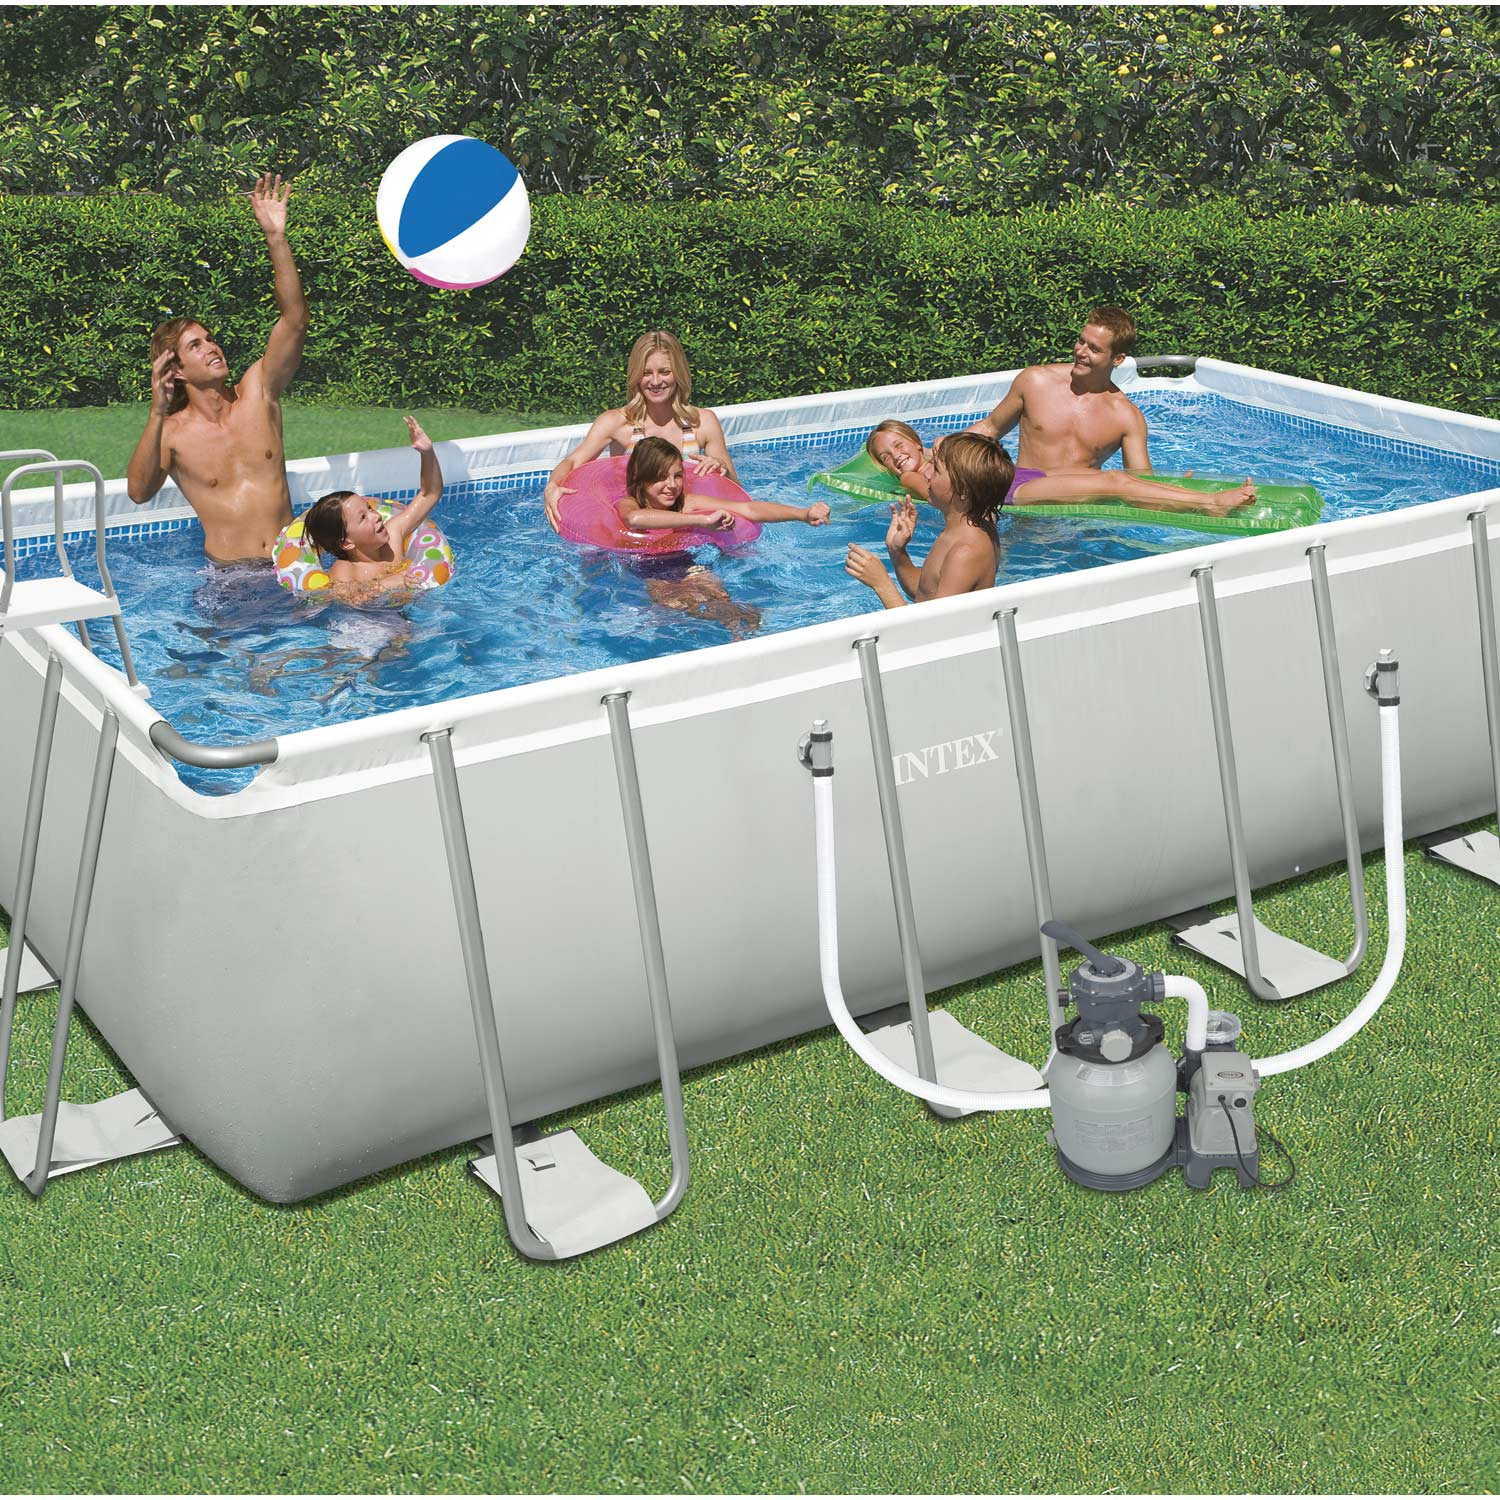 Piscine hors sol autoportante tubulaire ultra silver intex for Piscine hors sol 1m60